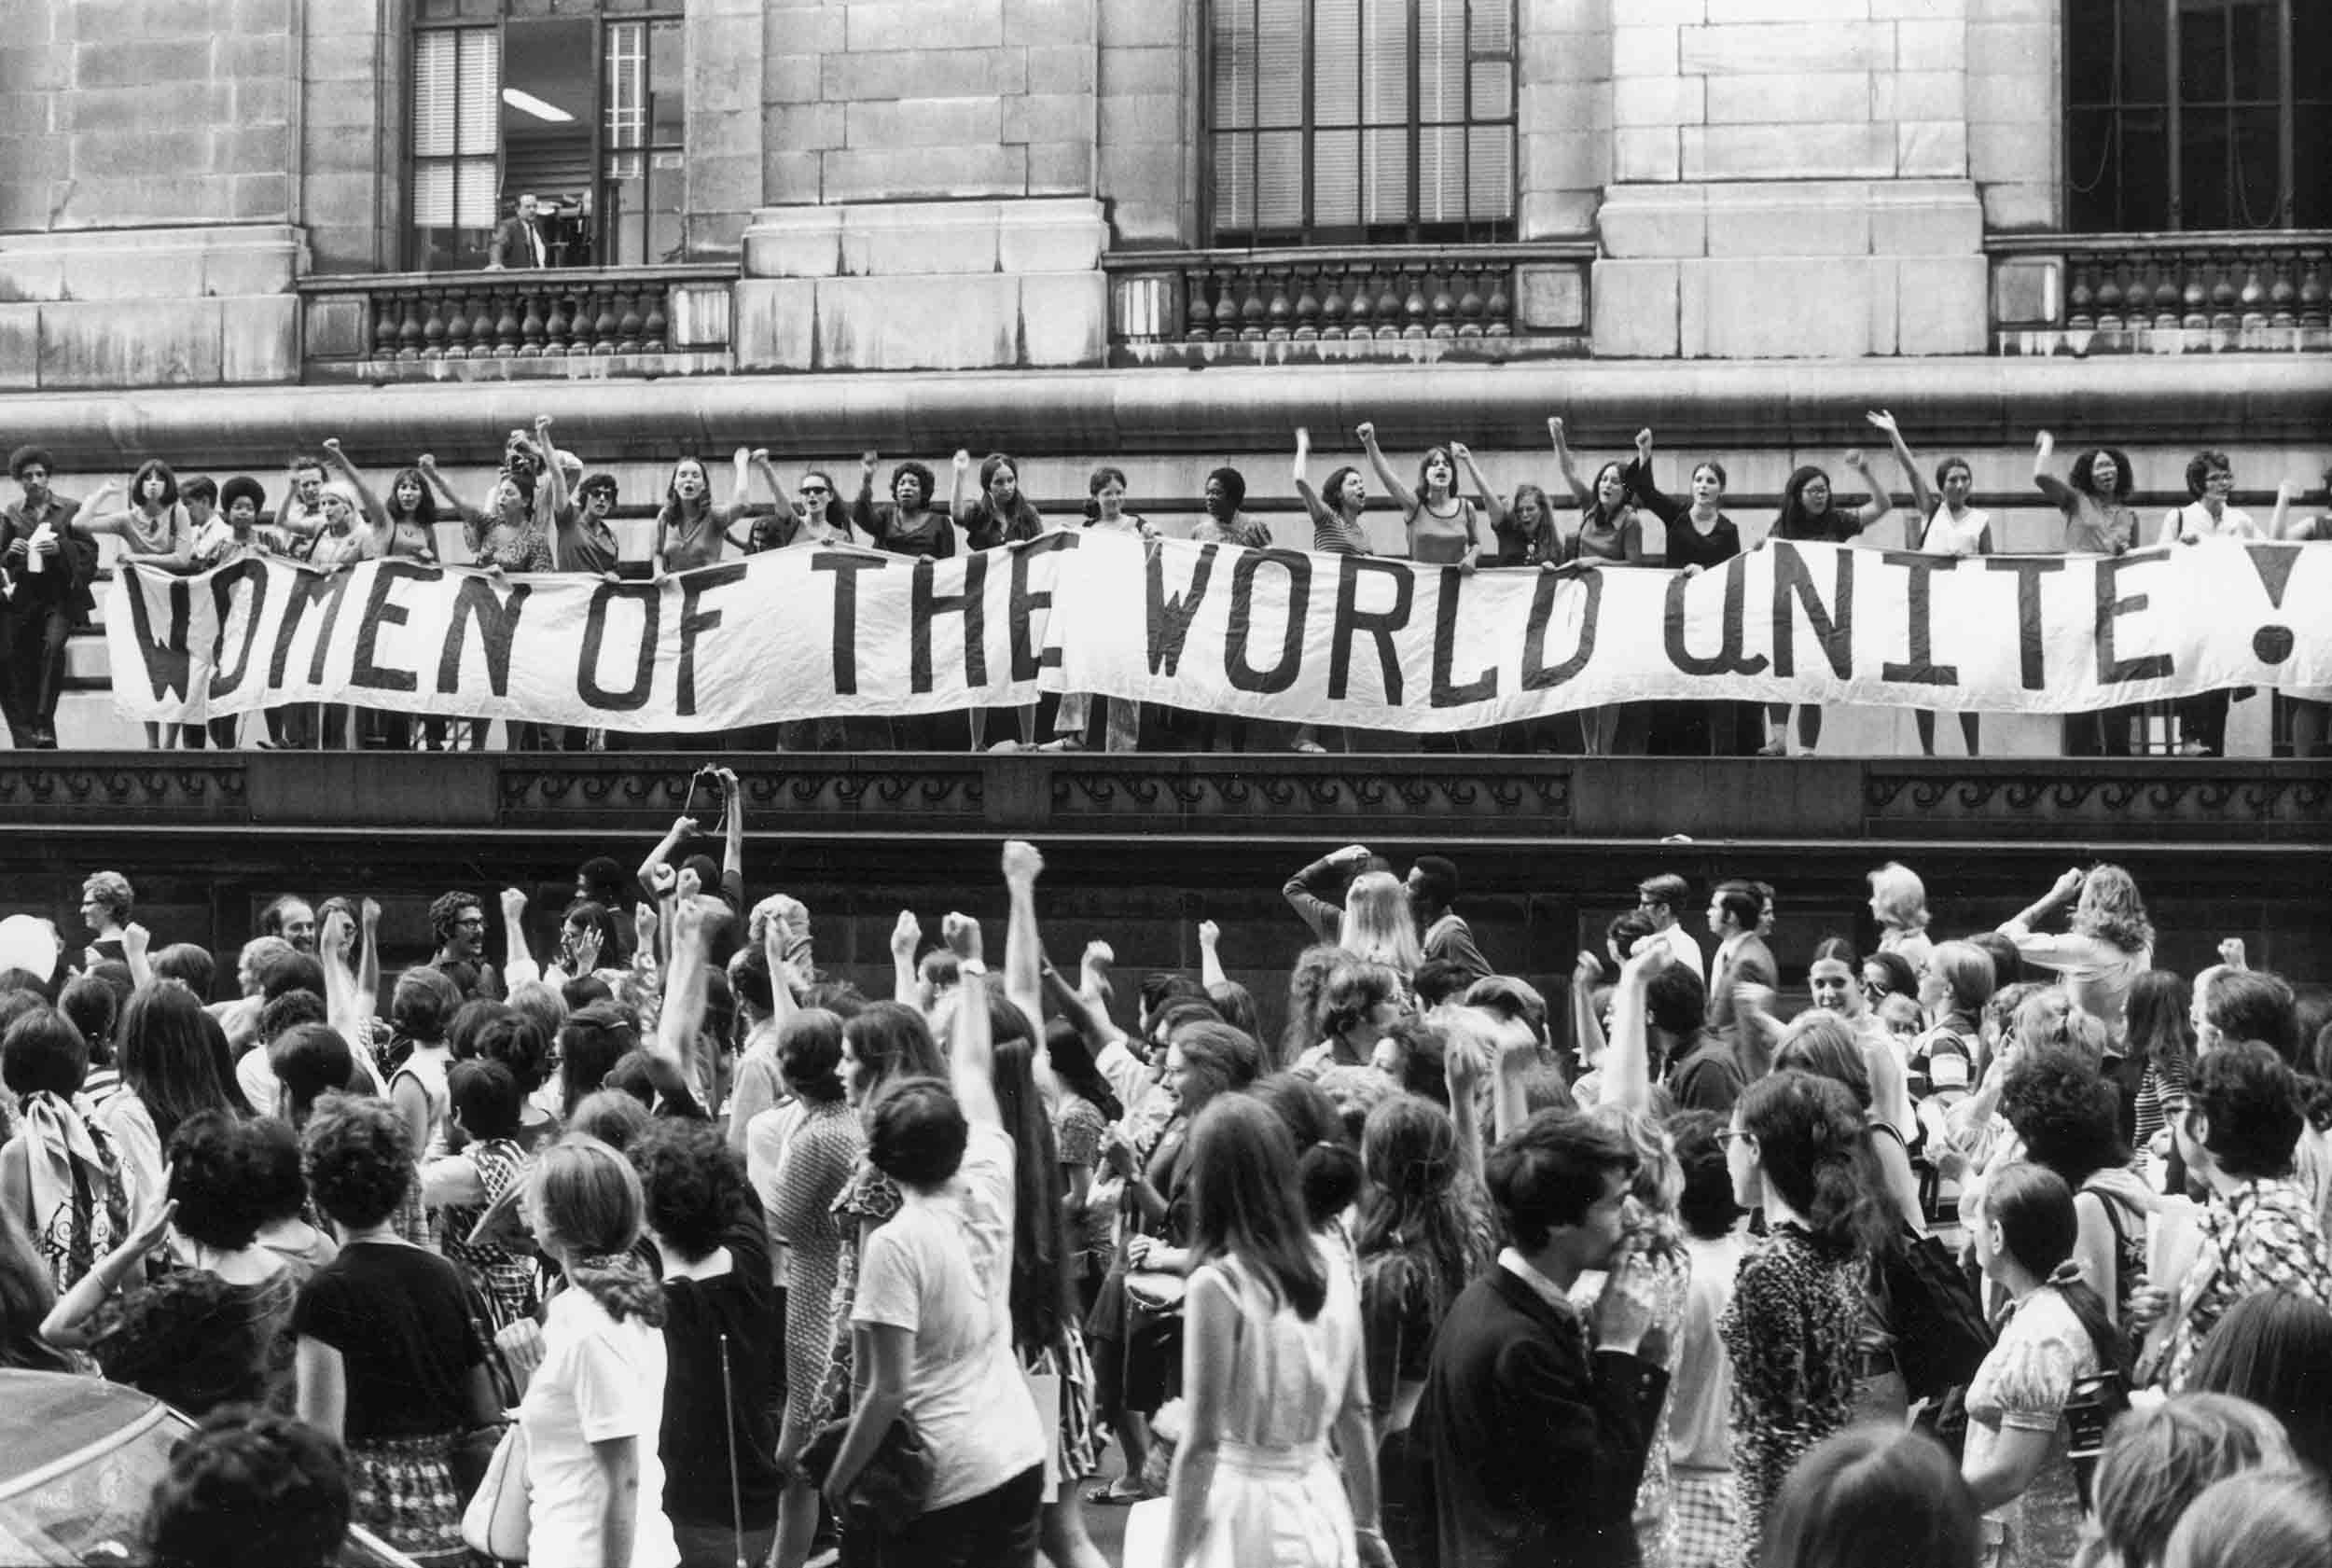 March to Commemorate the 50th Anniversary of Women's Suffrage in the United States, NYC, August 26, 1970